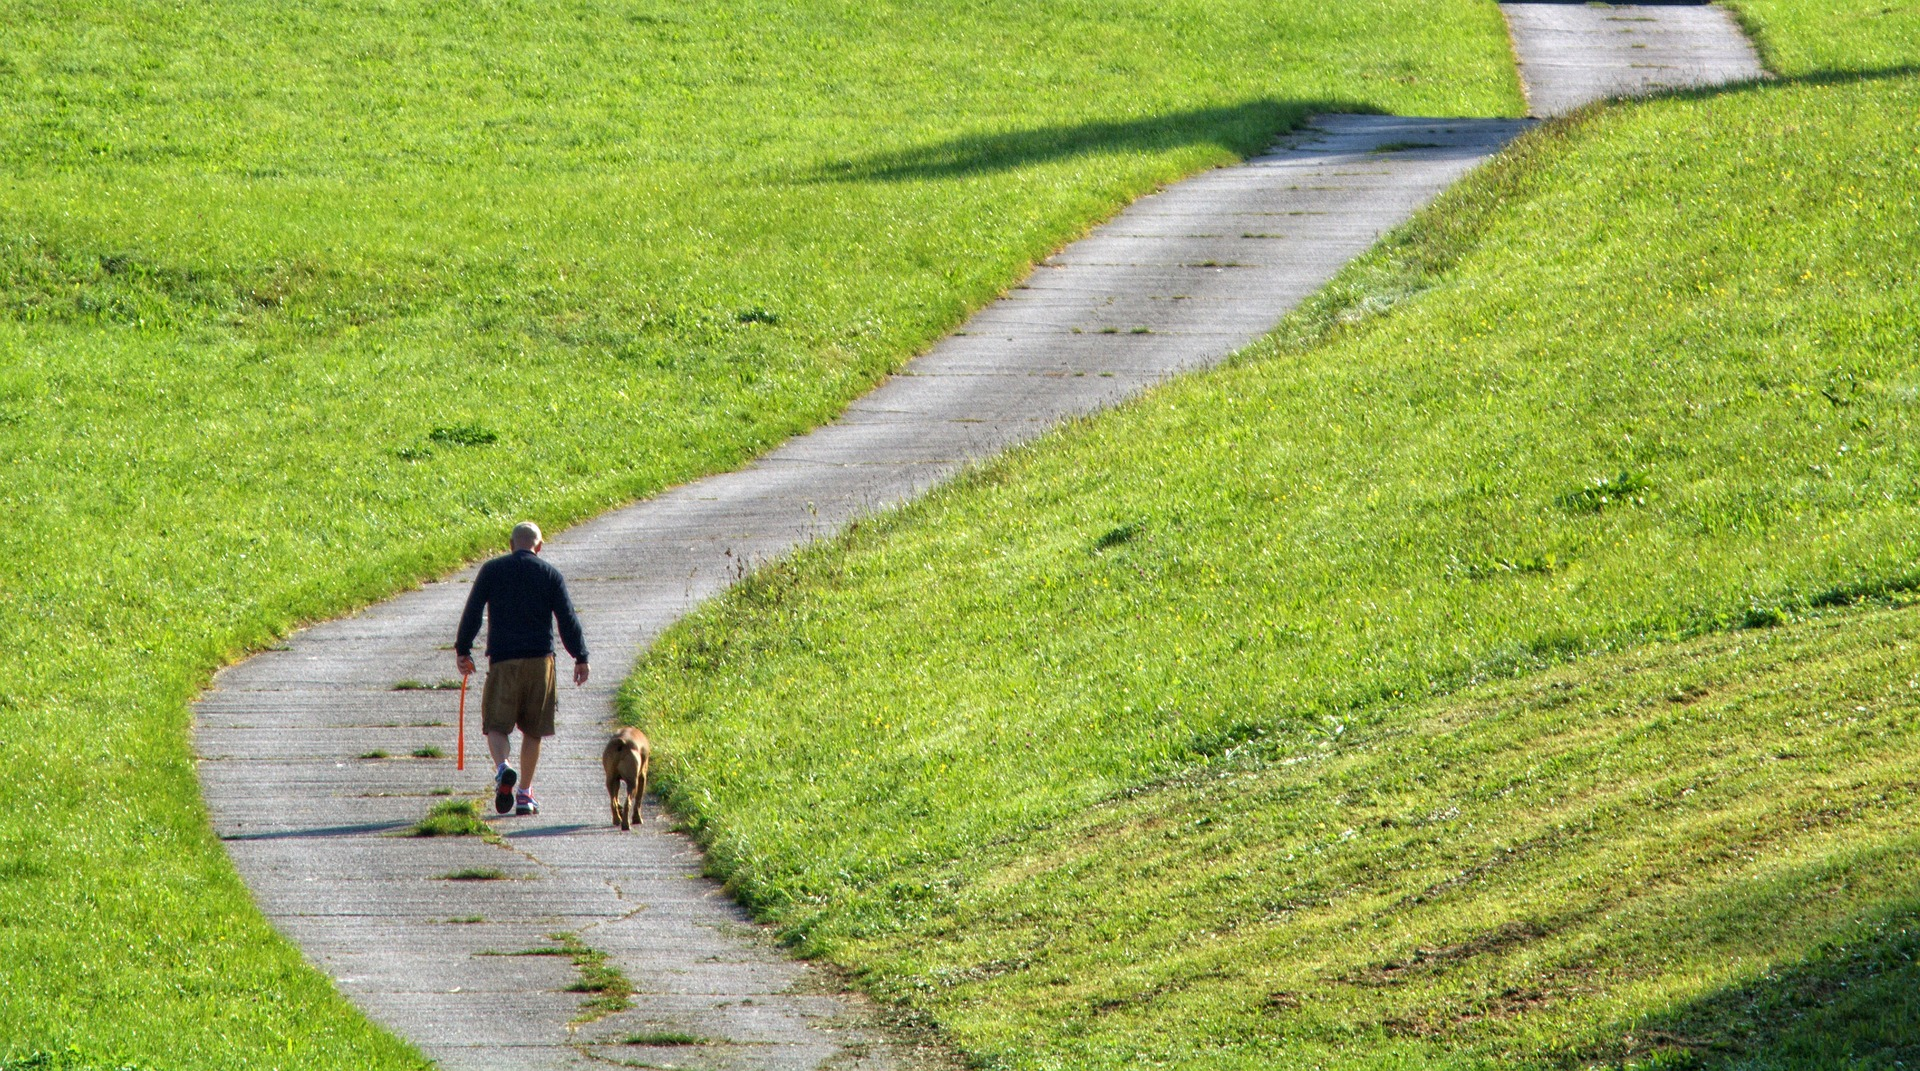 Man and dog walking a path in a park